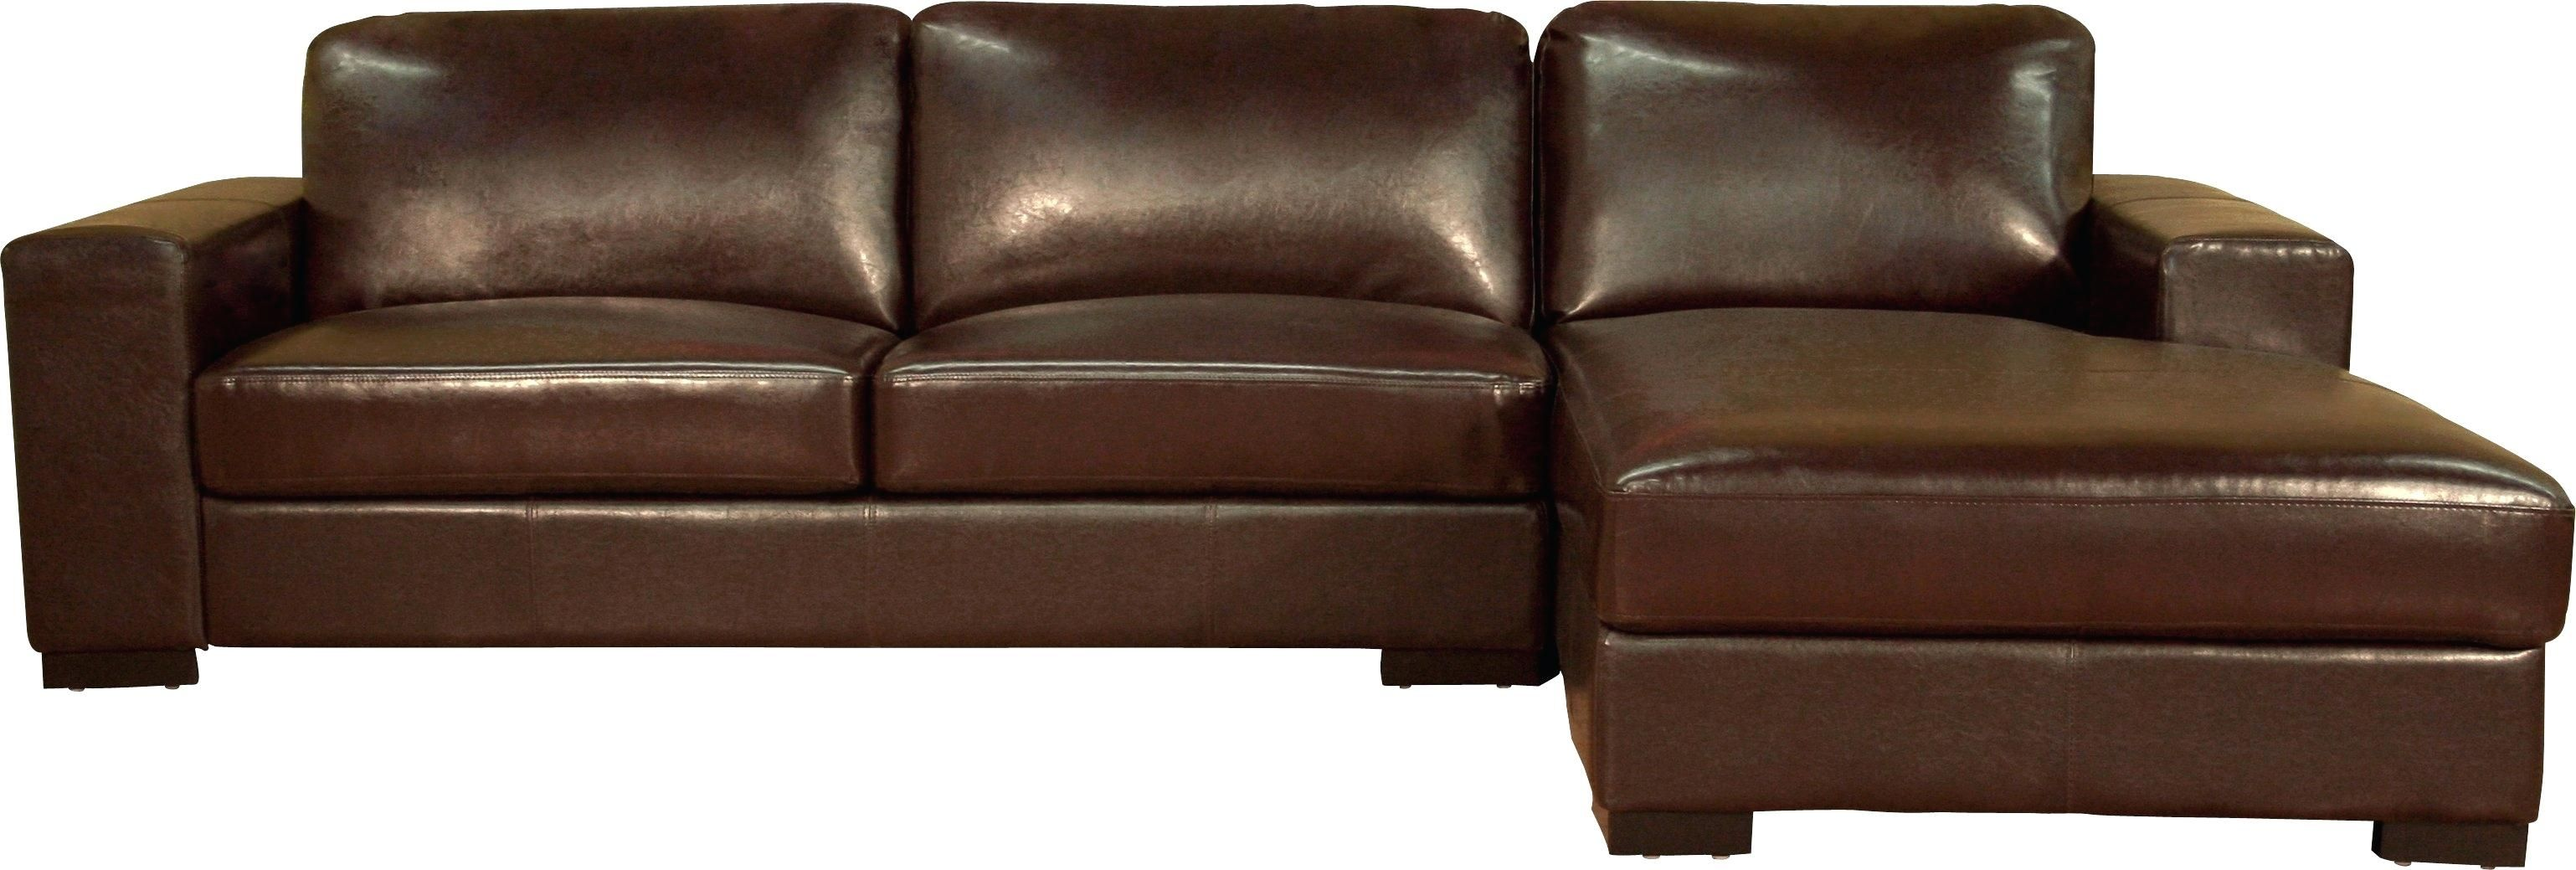 Baxton Studio Callidora Brown Leather Sectional Sofa With Right